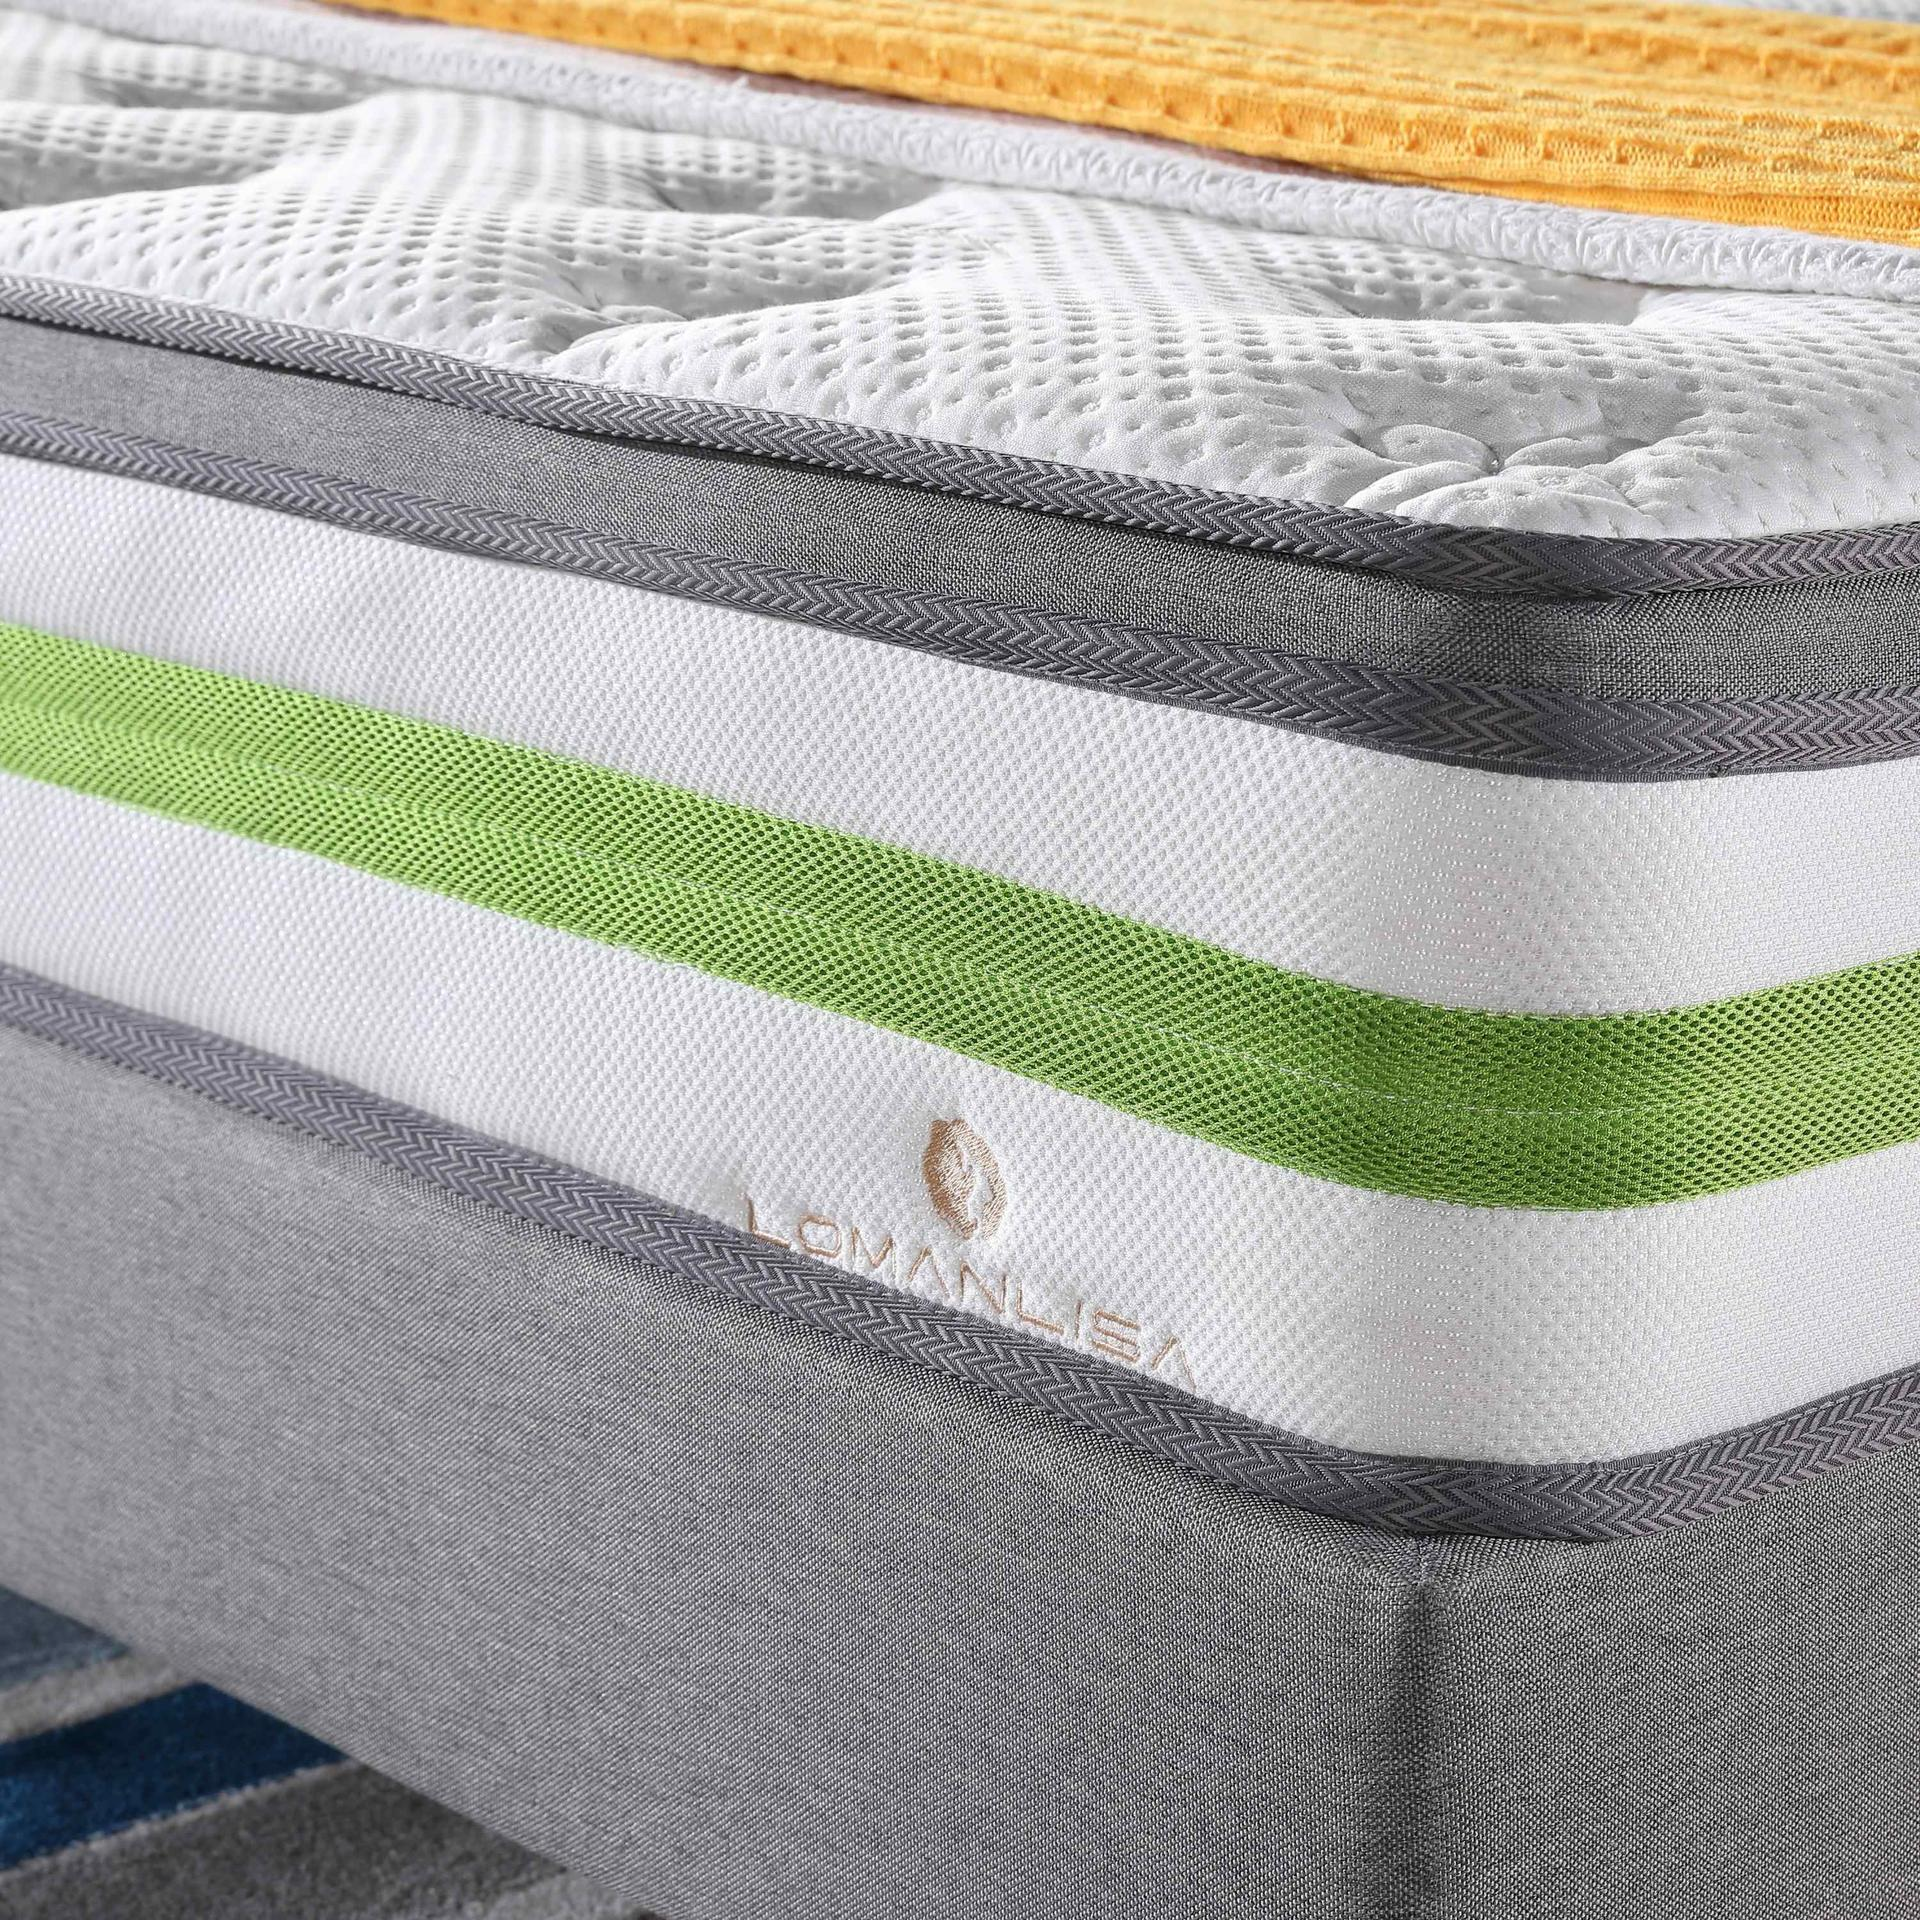 Euro Top Design Cooling Bamboo Fabric Anti-Mite Rolled Mattress With Convoluted Foam